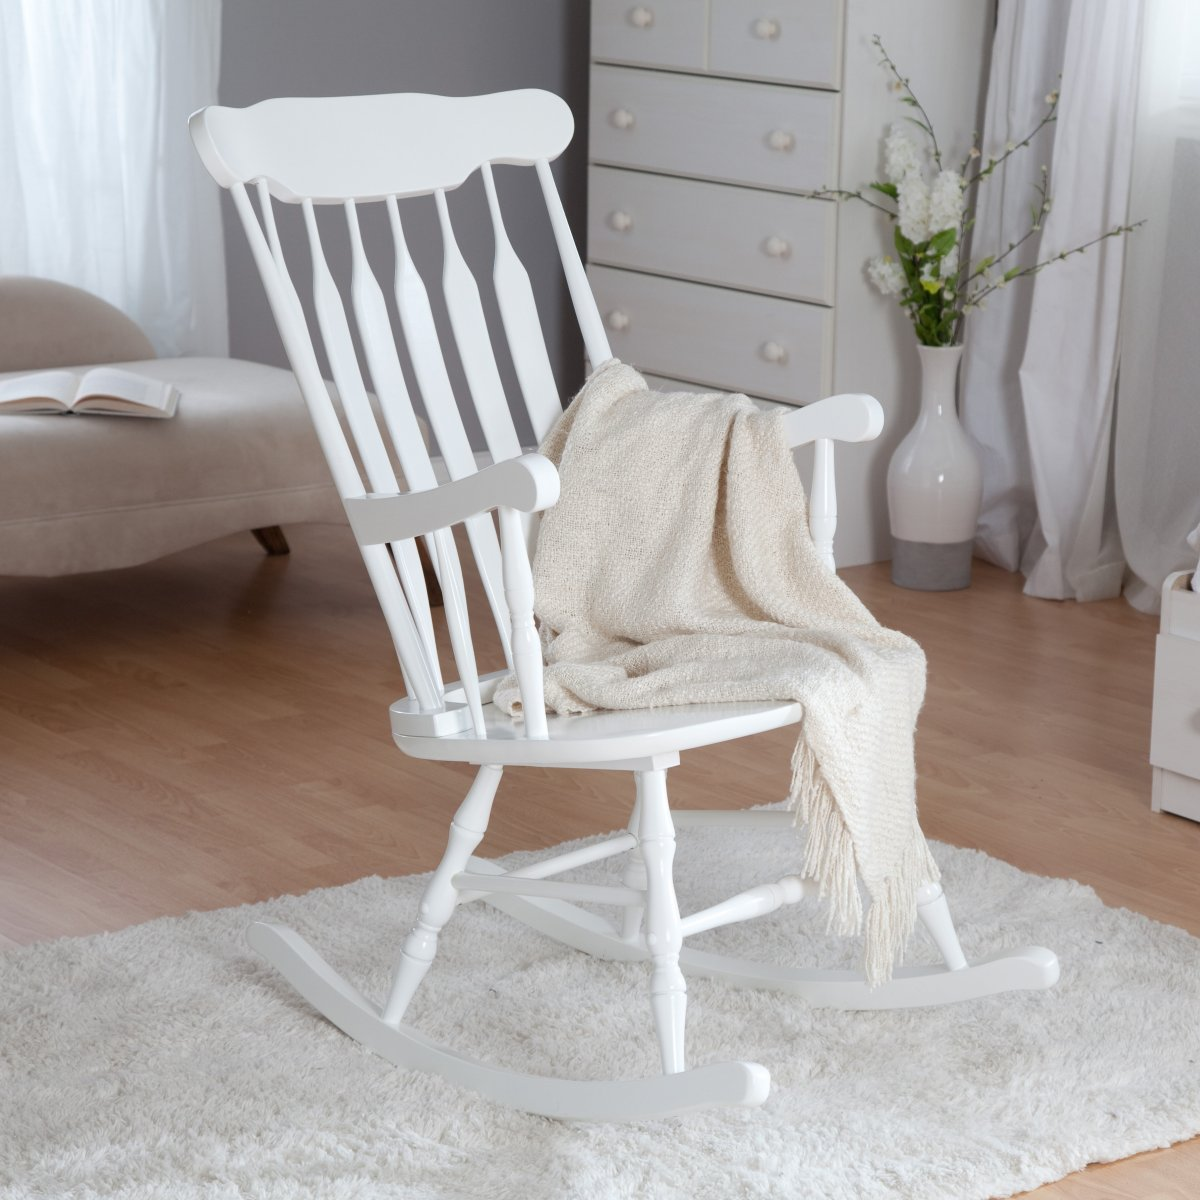 Image of: Oversized Rocking Chair Design